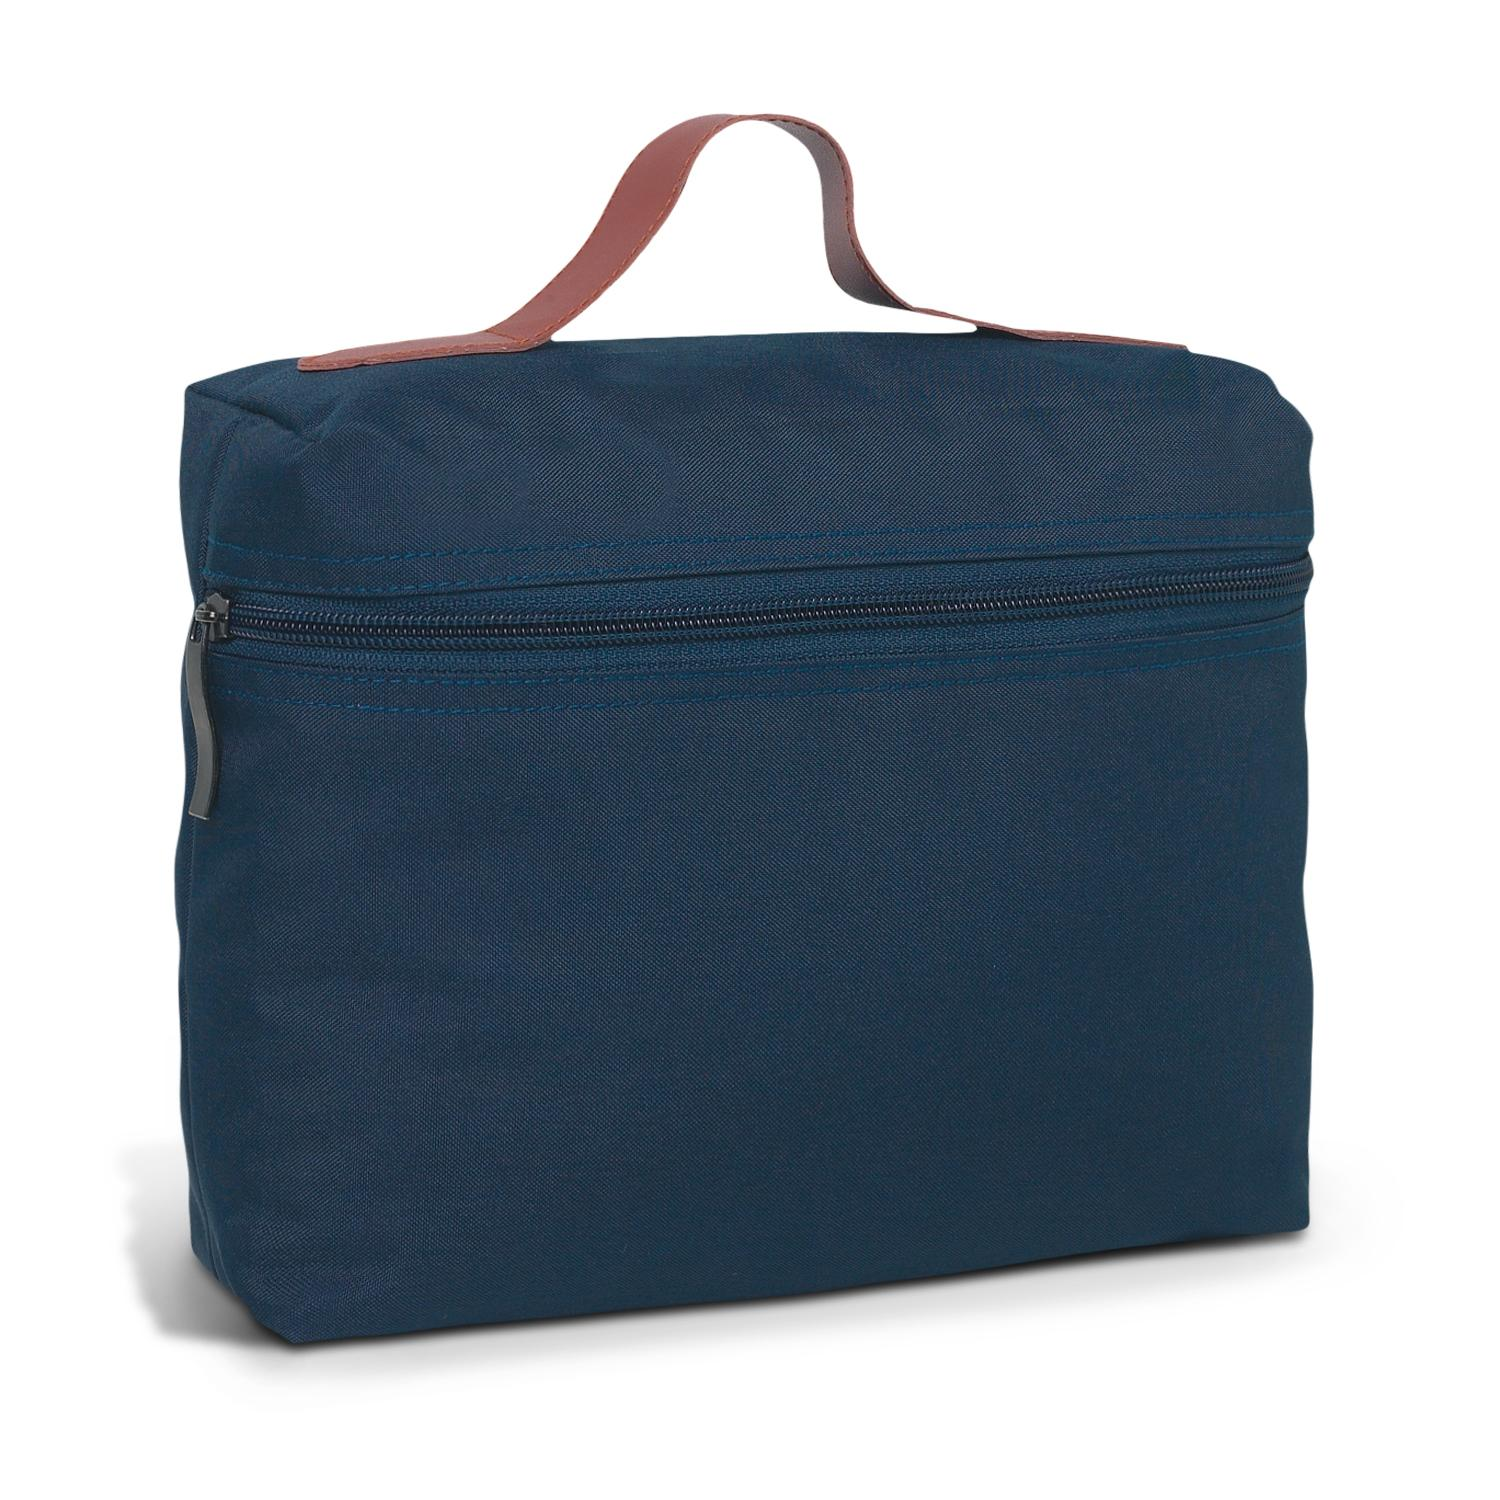 Cosmo Bag